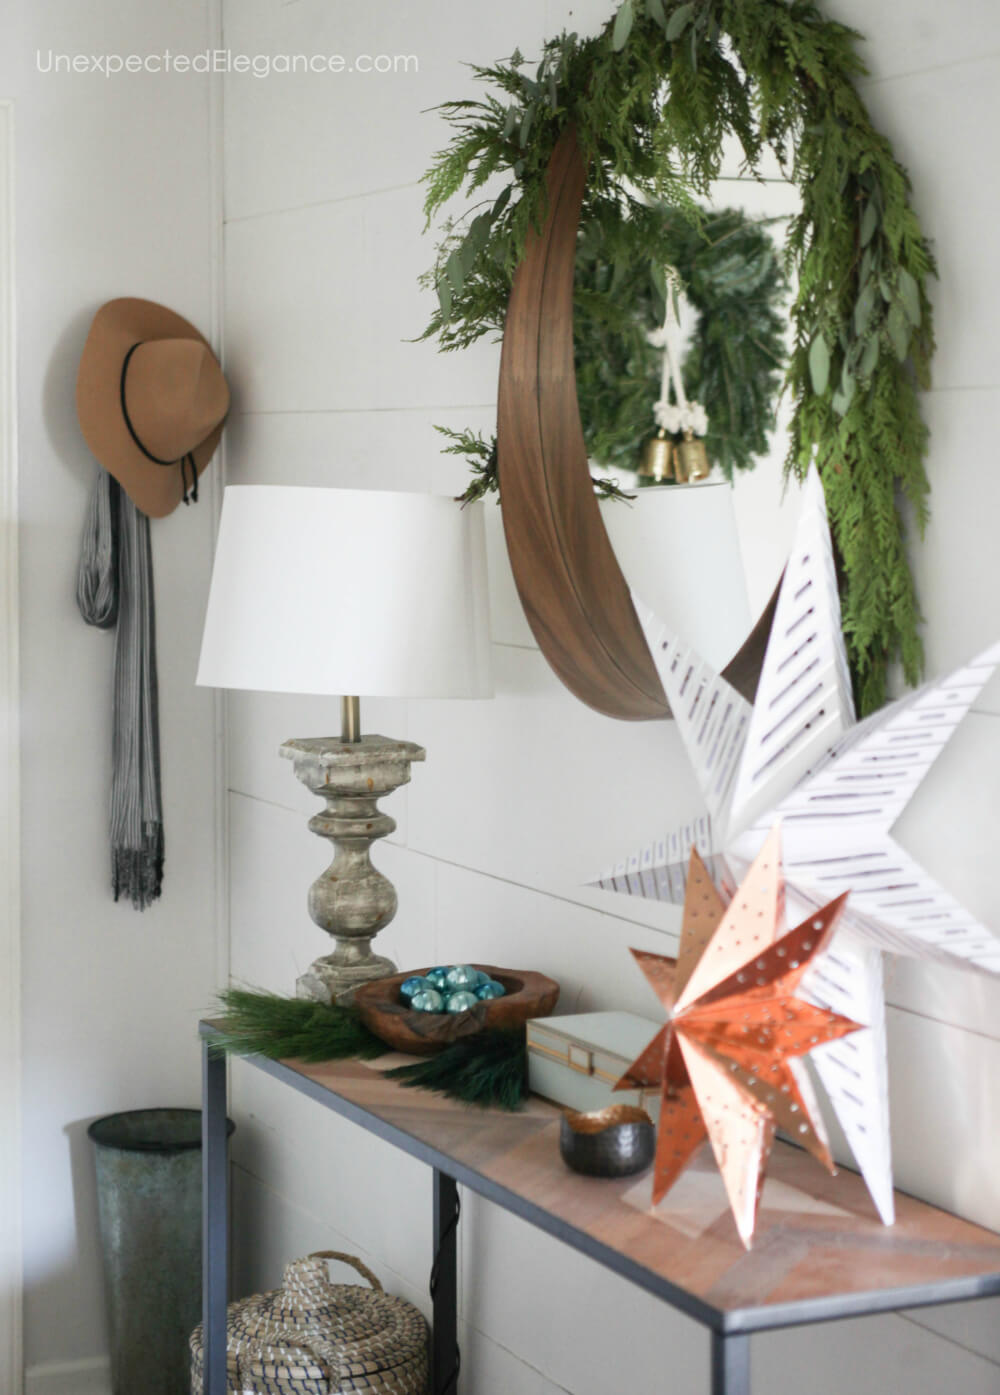 Festive holiday decor that is simple and easy!